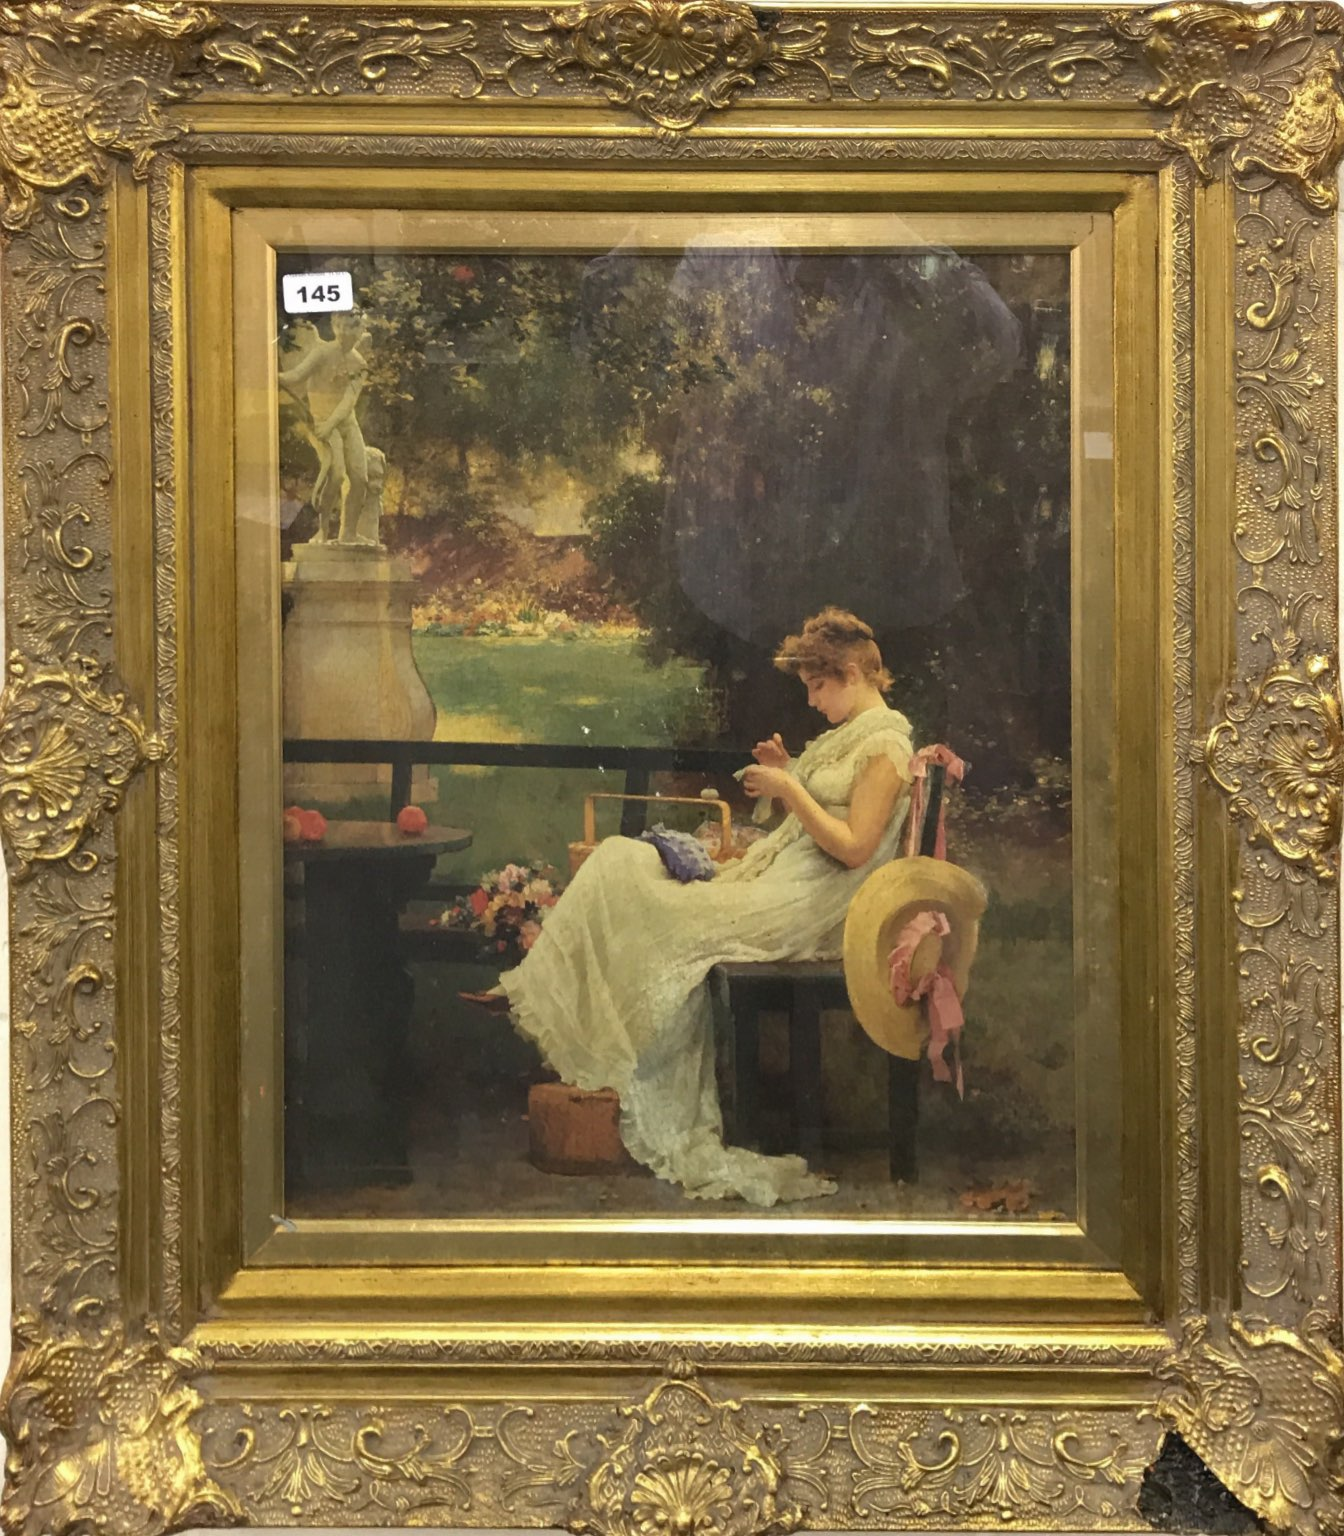 85b850c37b84 Lot 145 - A gilt framed oil finished print of a girl in a garden